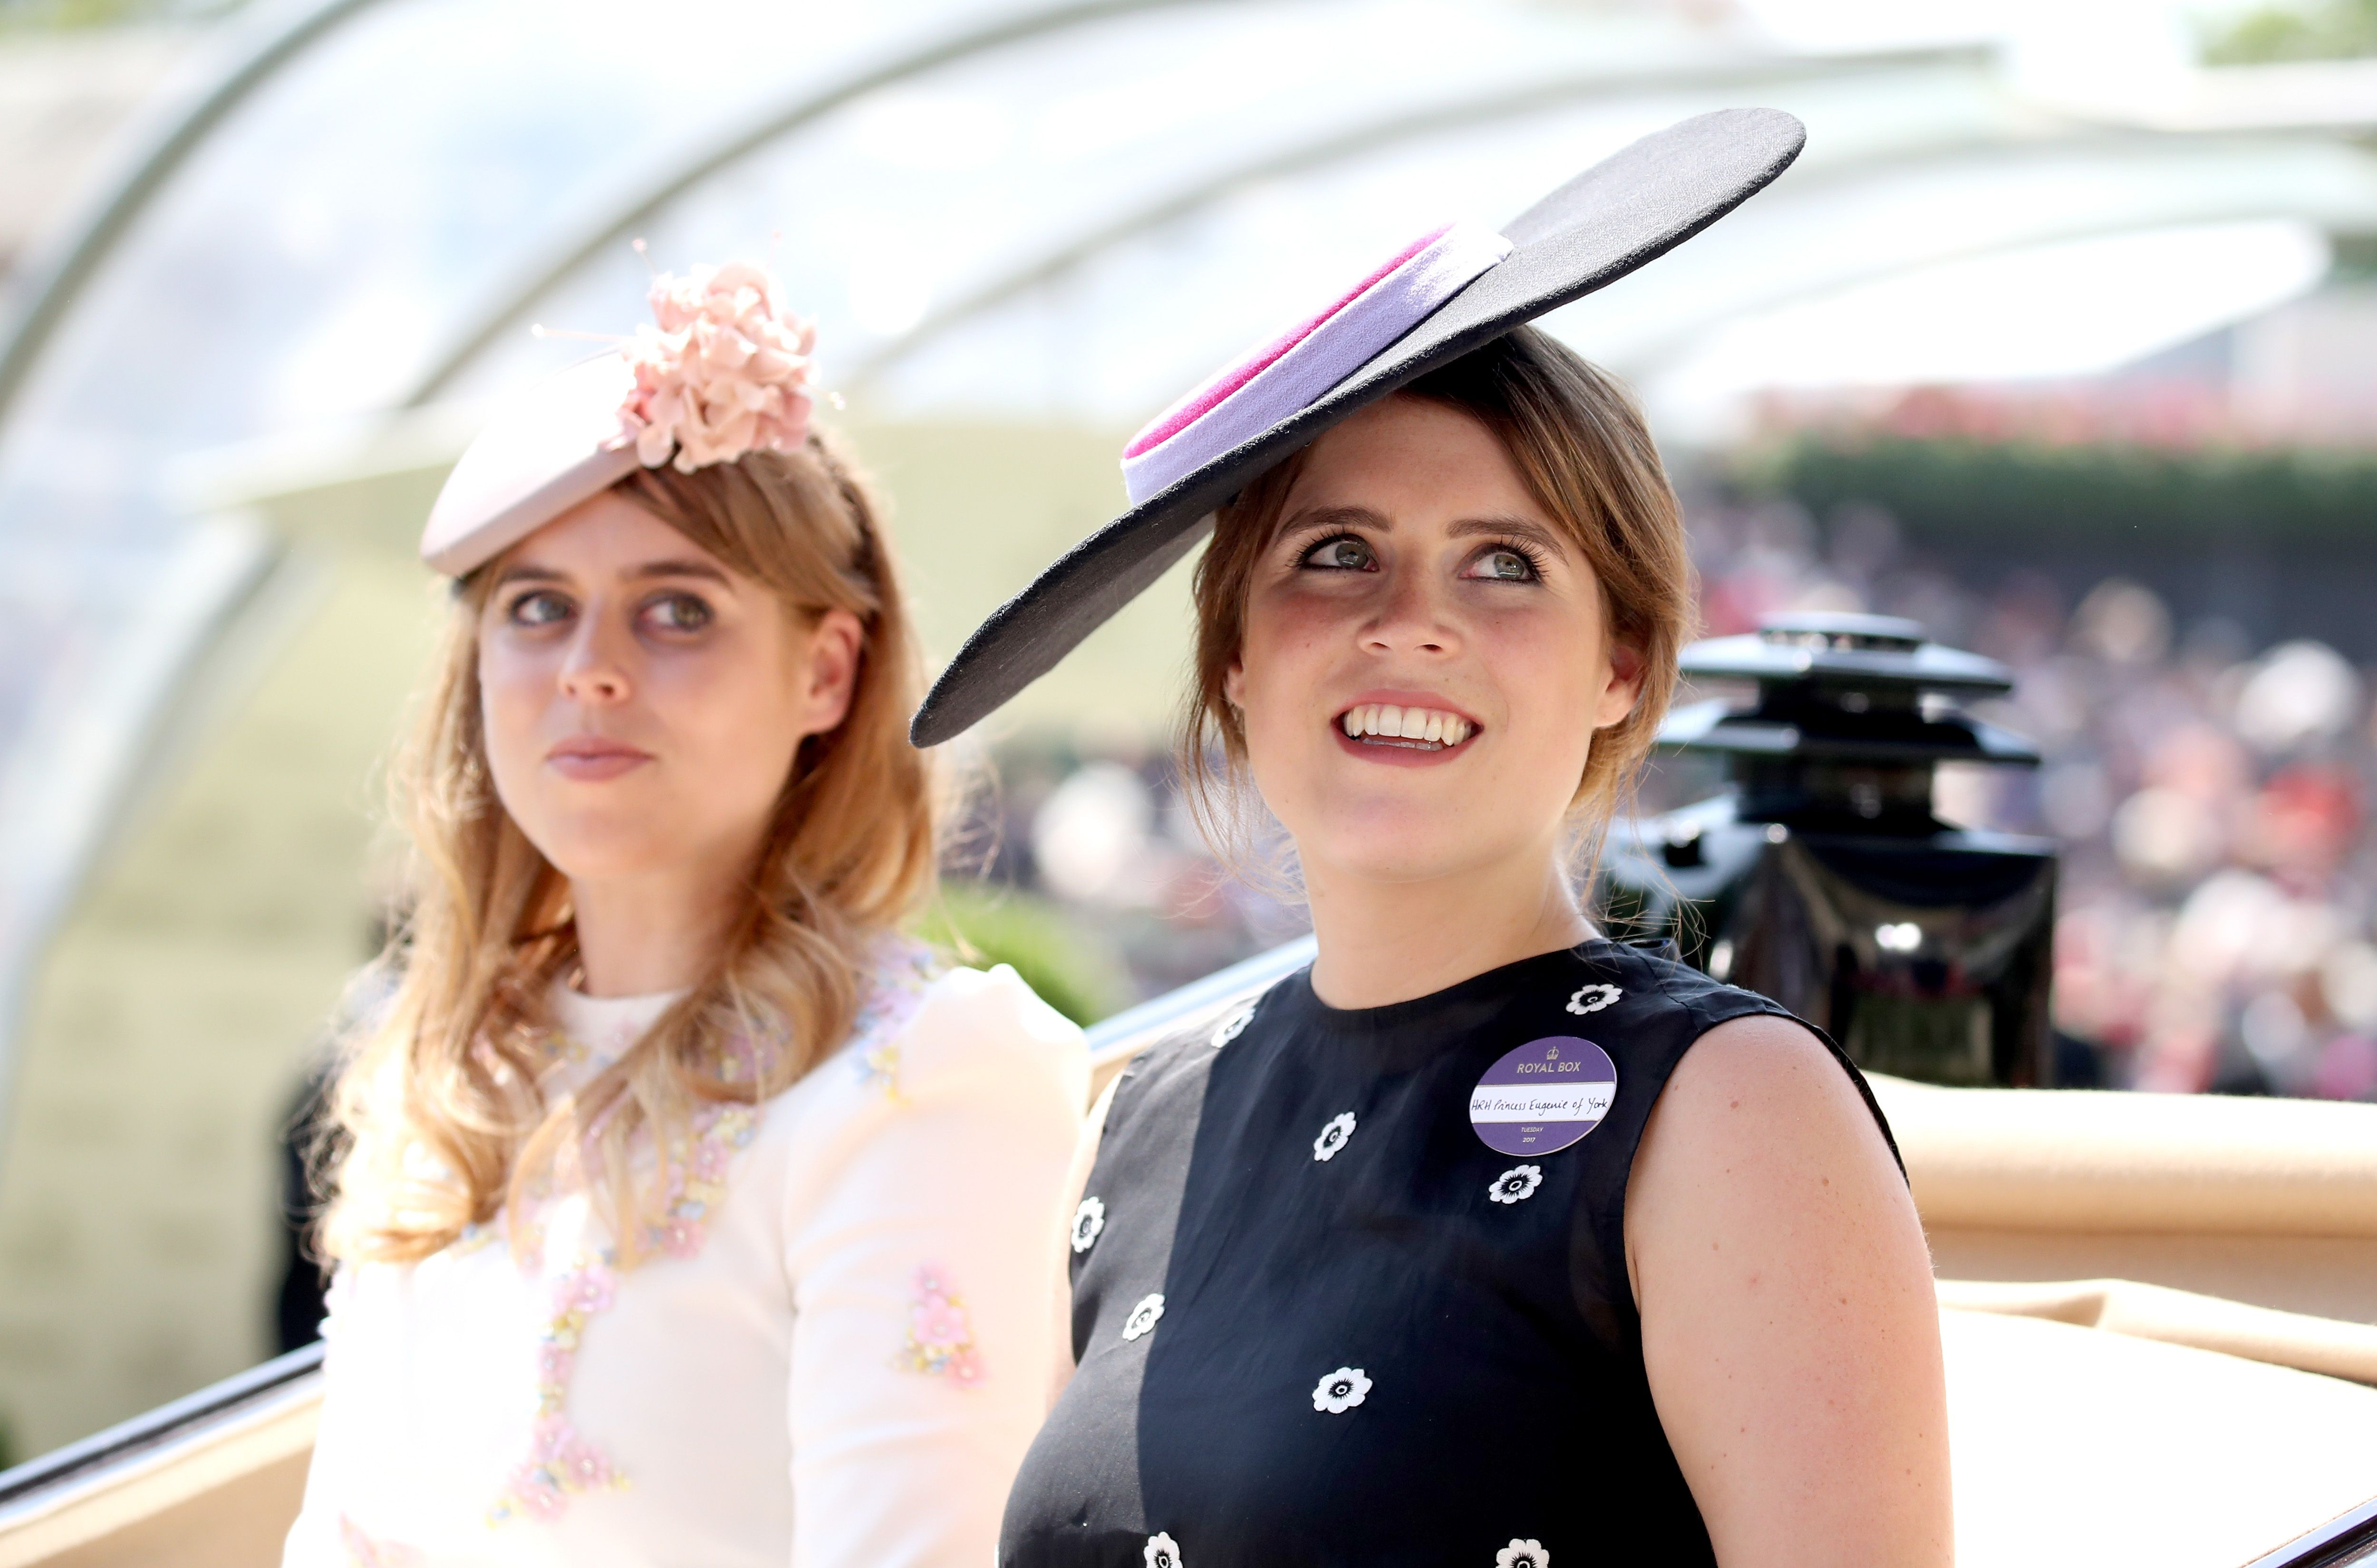 Princess Eugenie Revealed Princess Beatrice's Nickname on Instagram and It's So Freaking Delightful